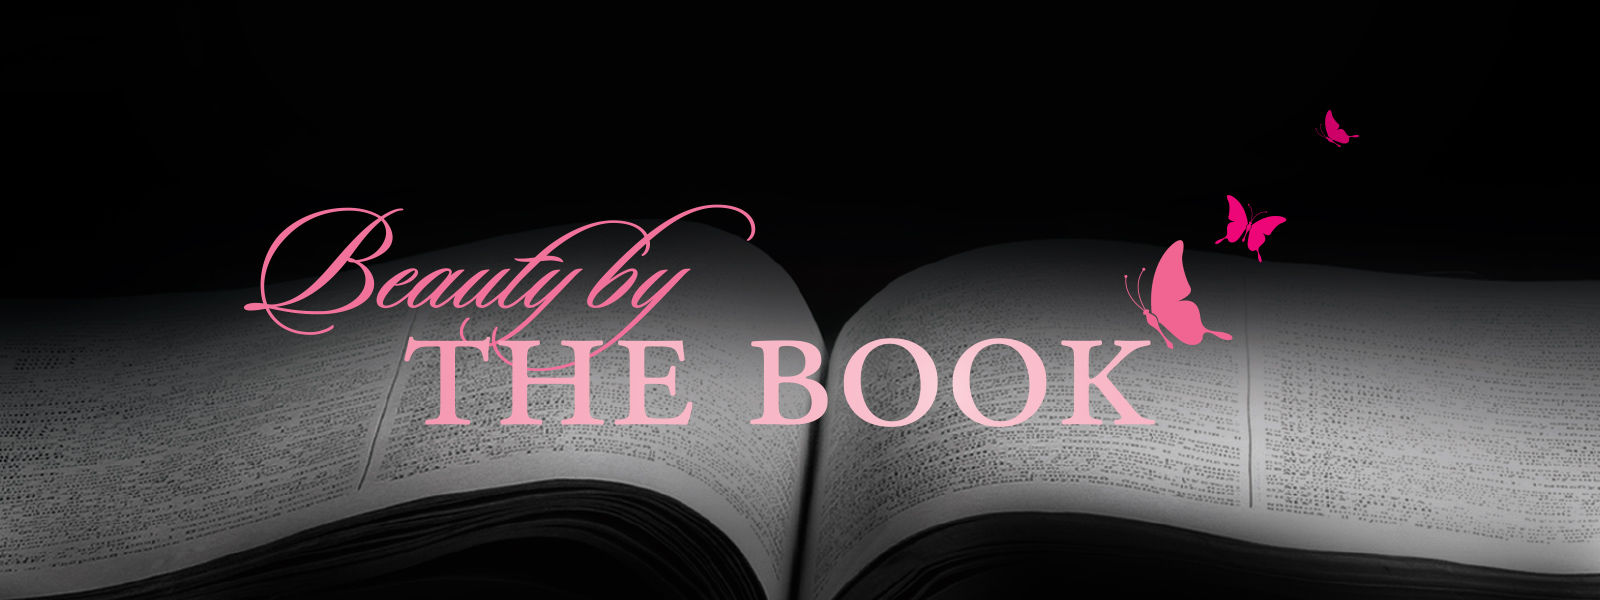 Beauty by The Book: Becoming a Biblically Beautiful Woman